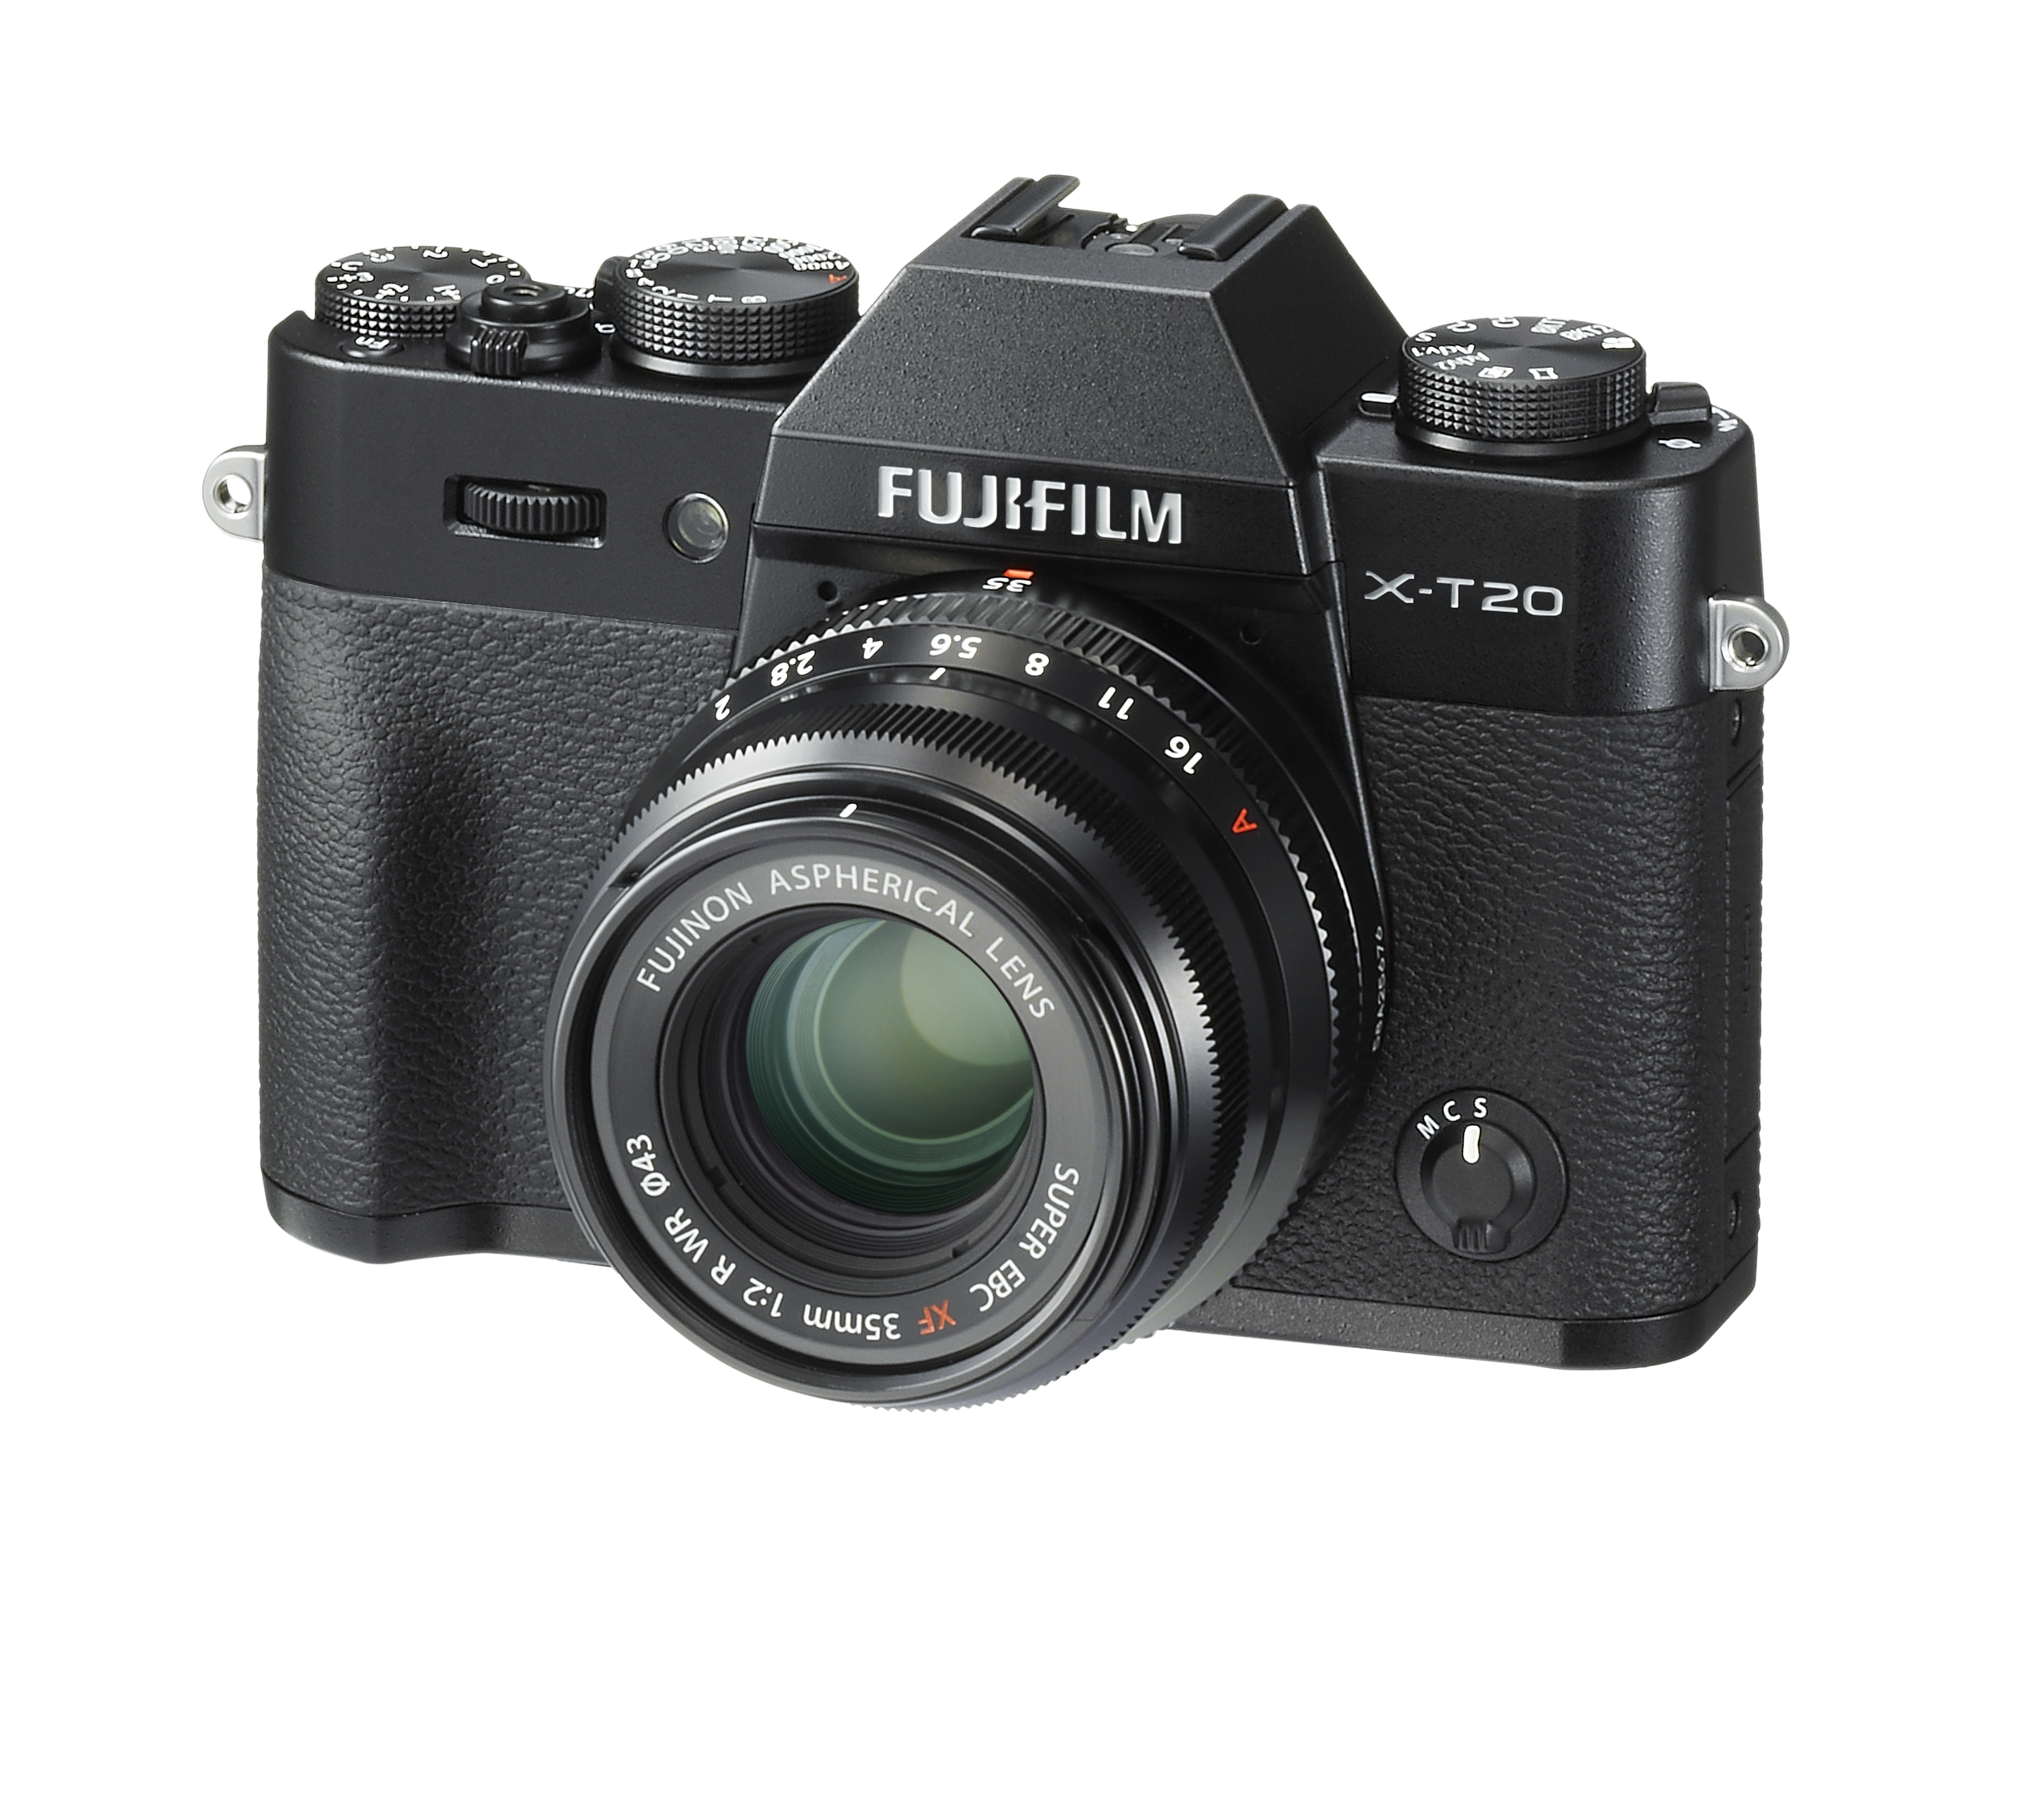 Fujifilm X-T20 review: Hands on first look